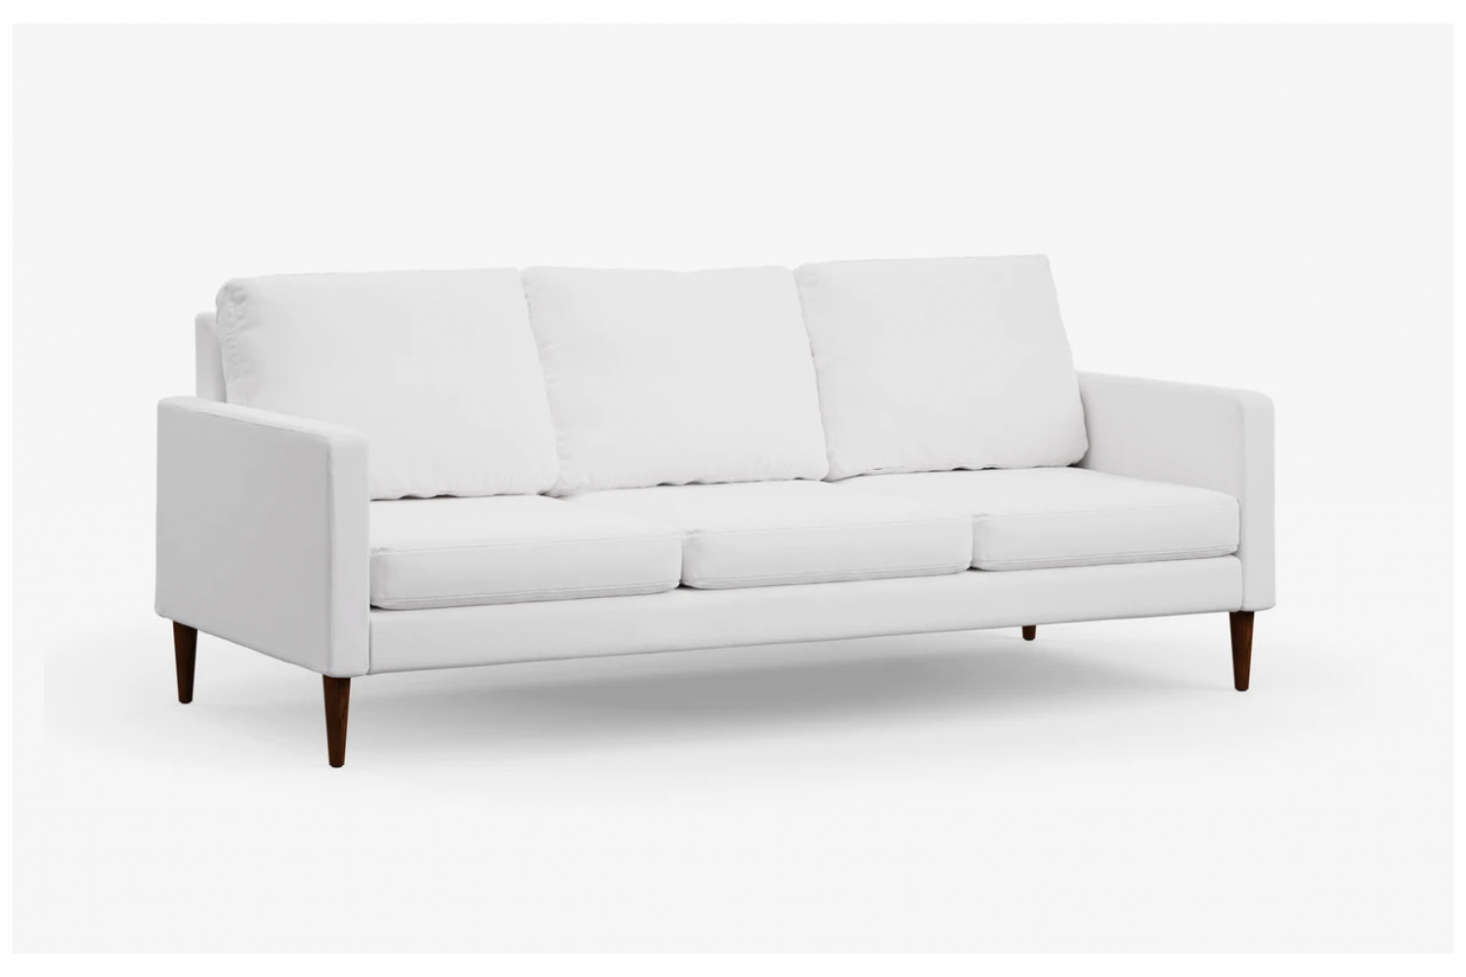 The Campaign Sofa shown in Pearl White Flat Weave upholstery is $src=